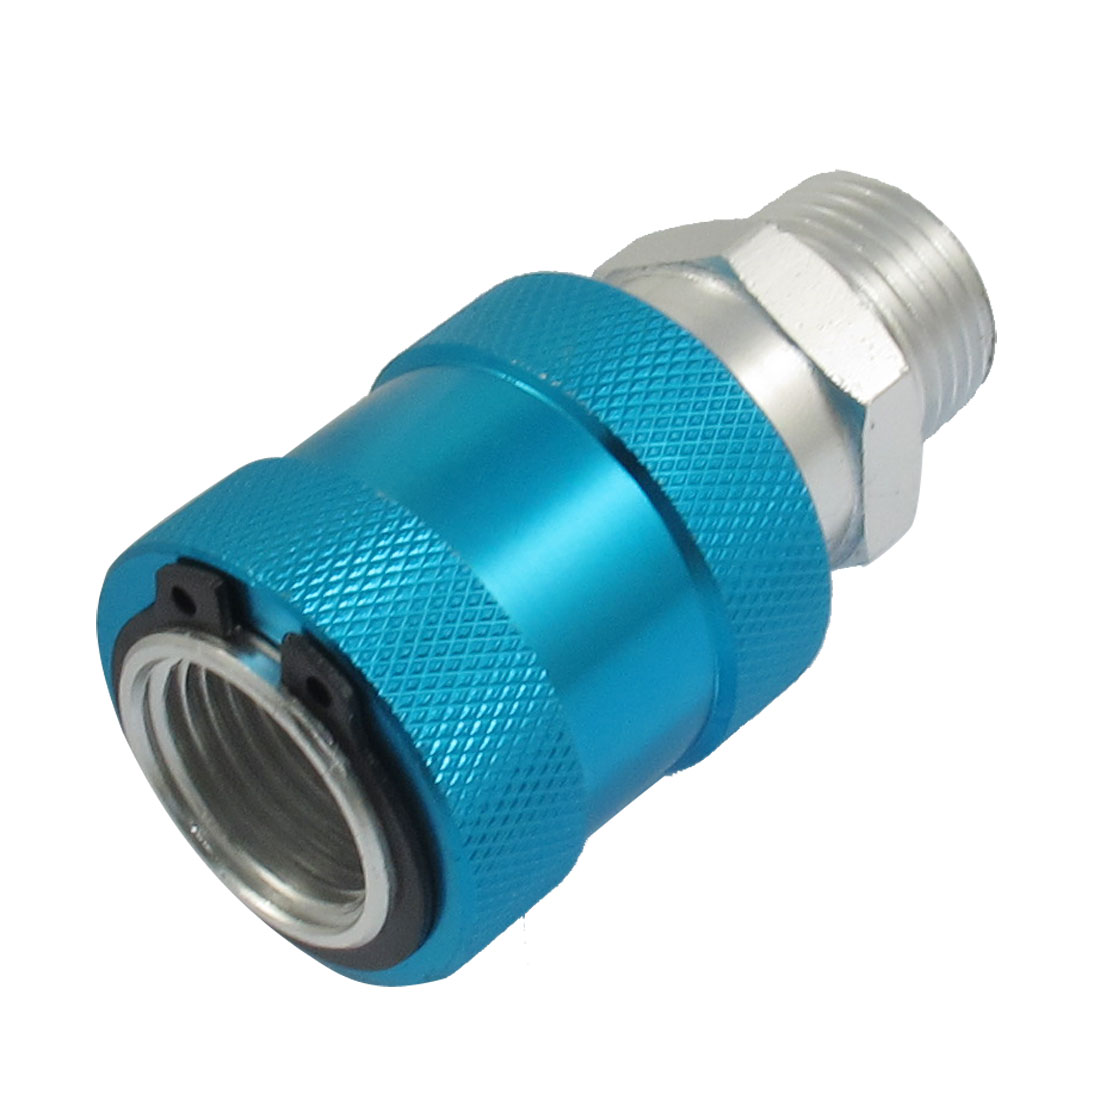 "HSV-15 G1/2"" Male to Female Port Air Pneumatic Hand Slide Valve"